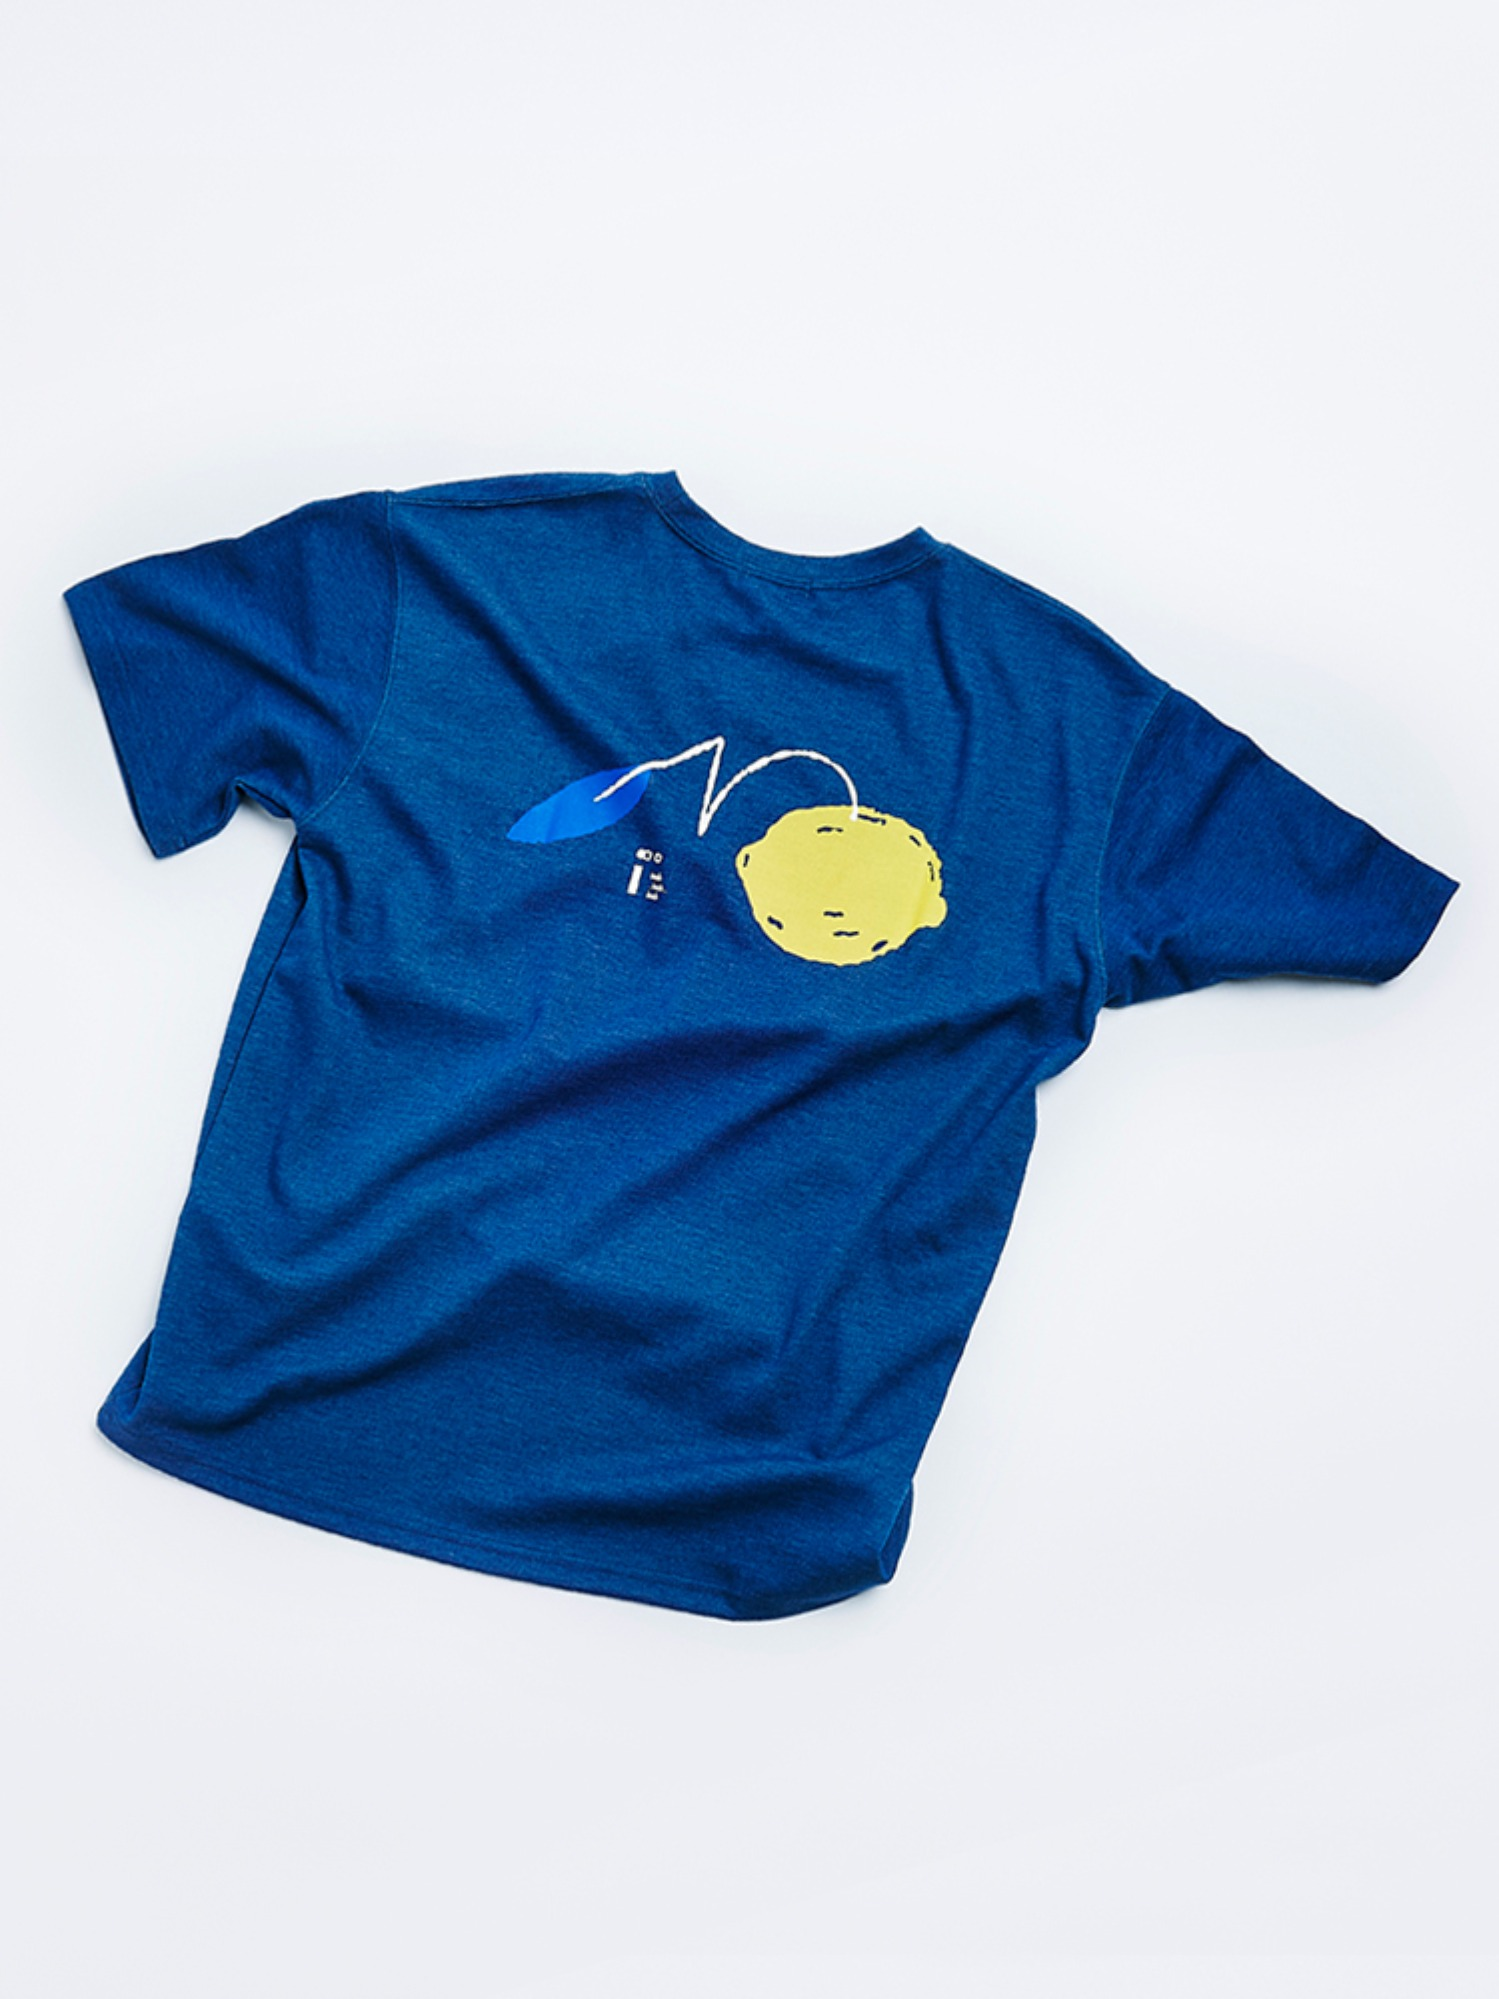 Lemon Solo T shirt (Heather Blue Navy)